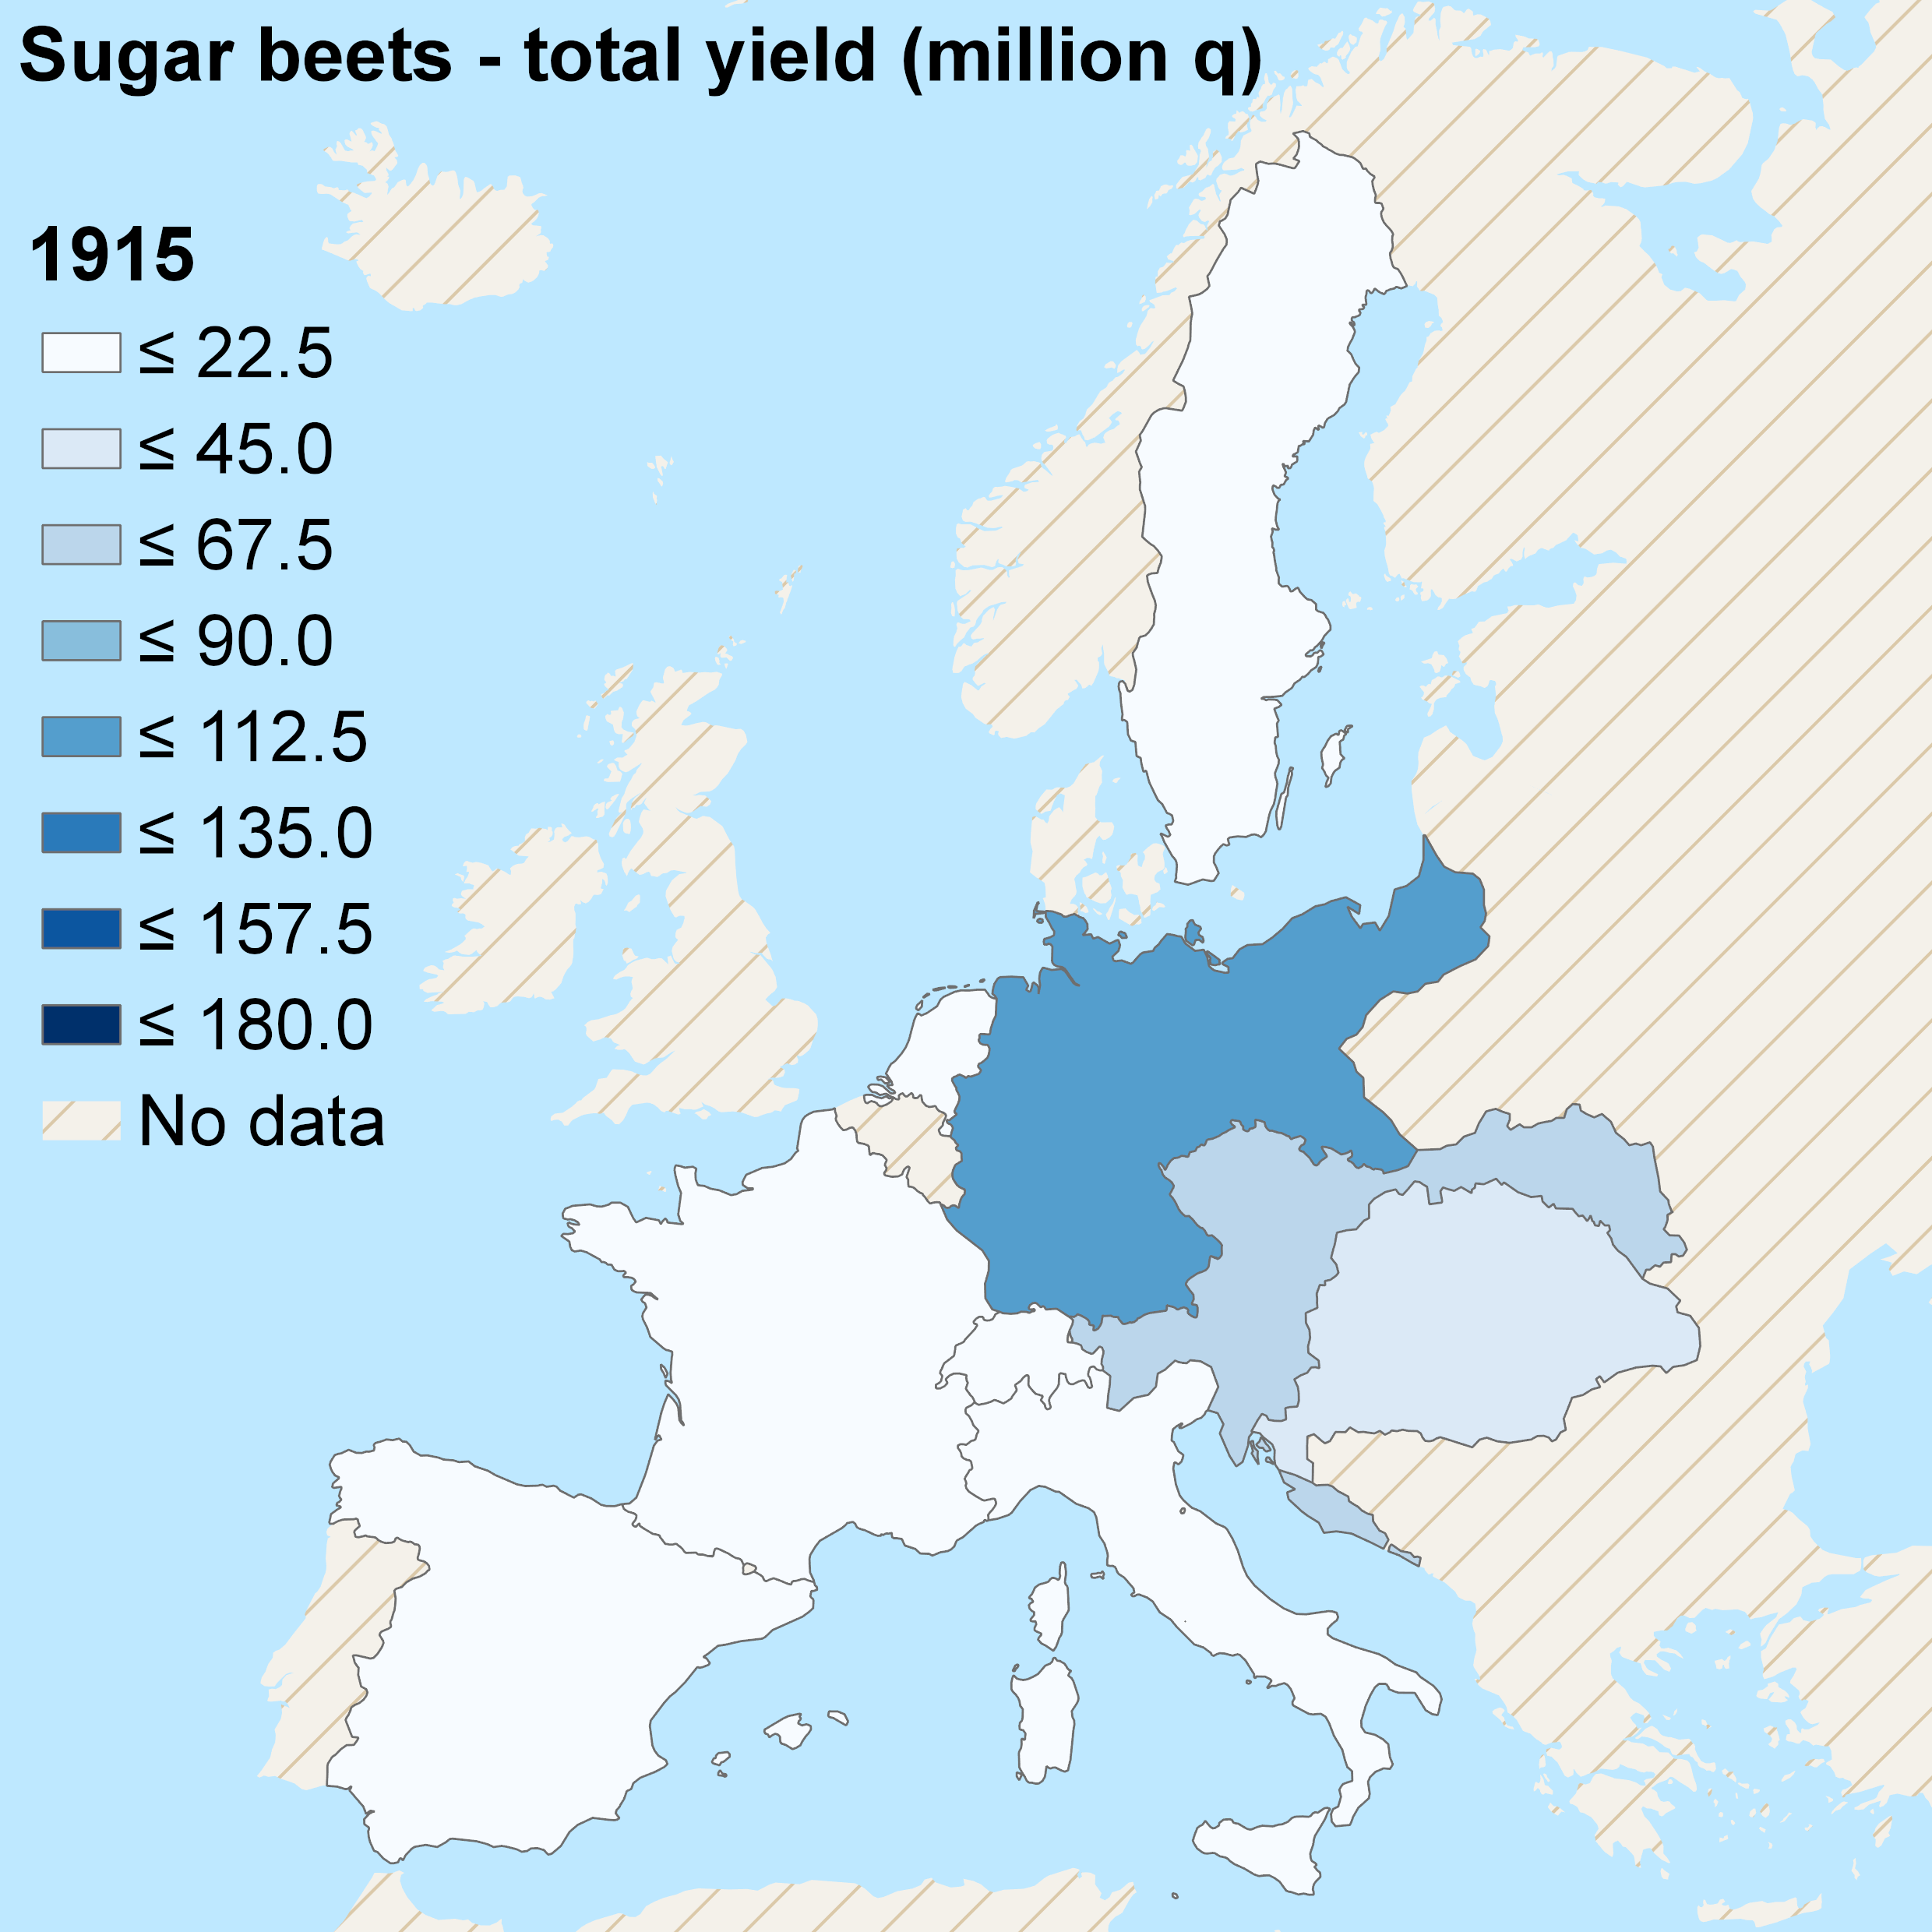 sugarbeets-total-1915